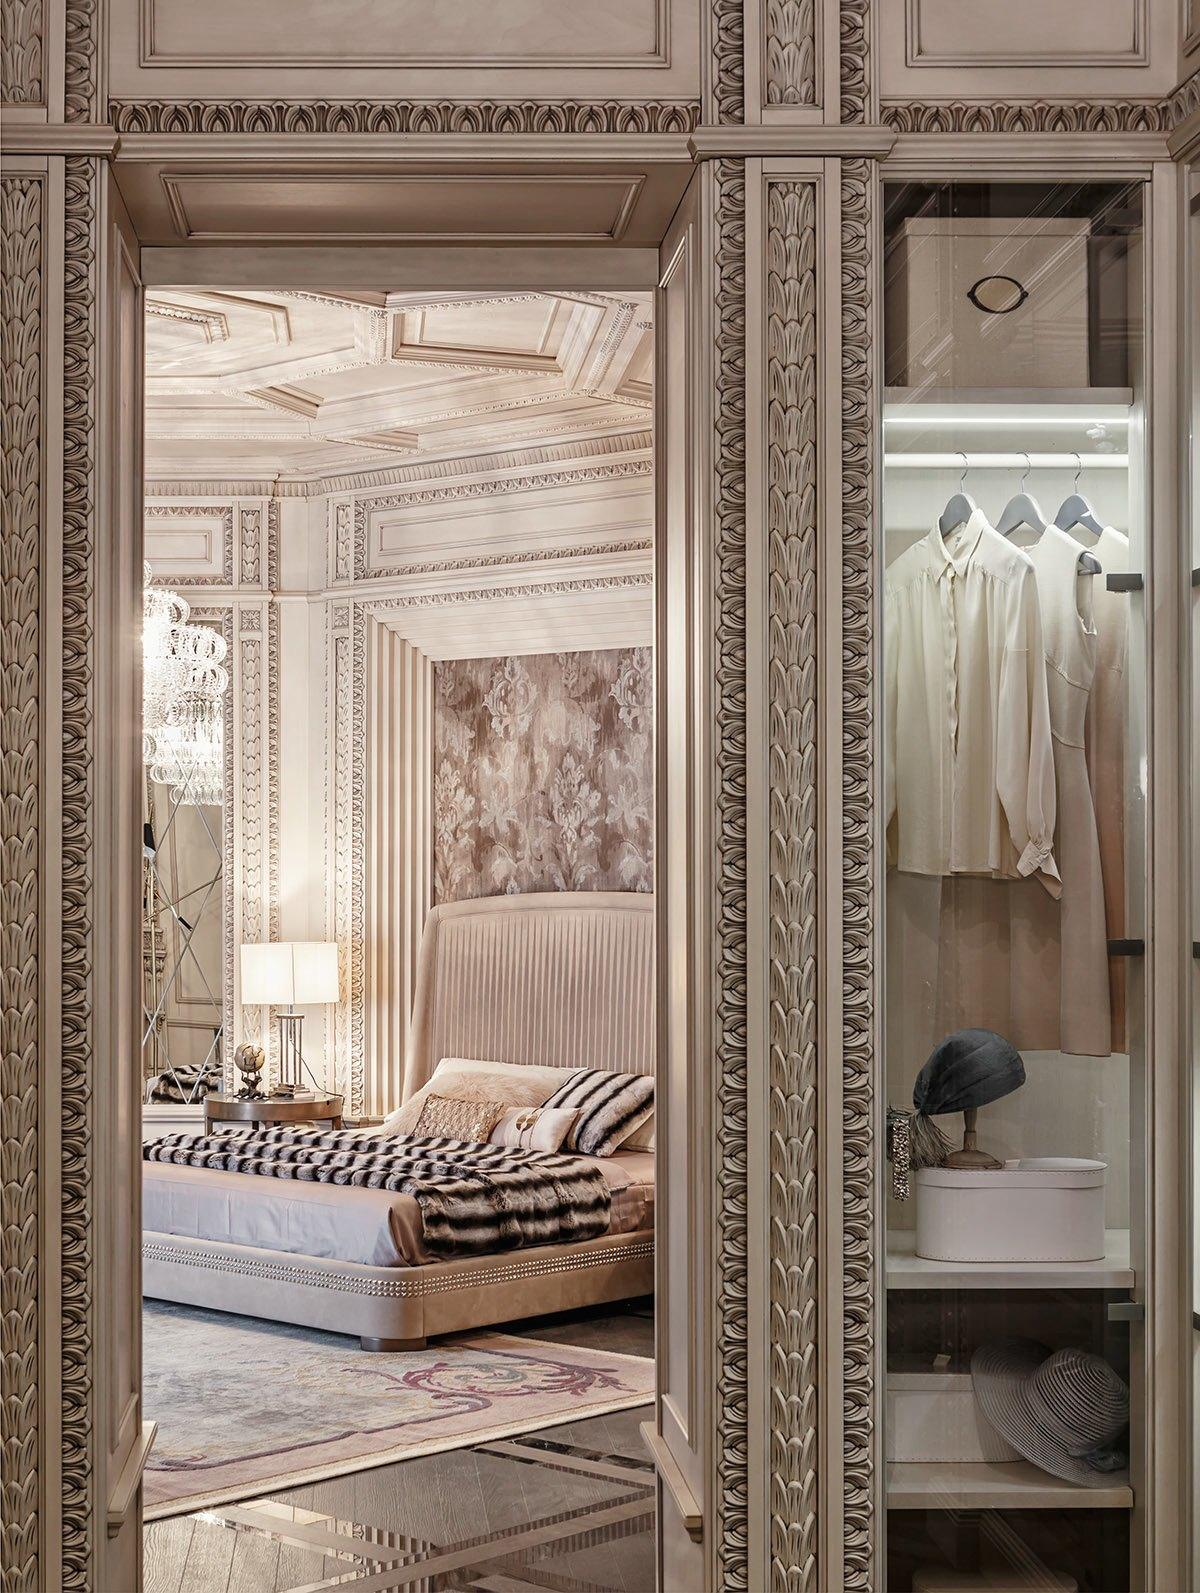 Art Interiors Design Architecture: Neoclassical And Art Deco Features In Two Luxurious Interiors